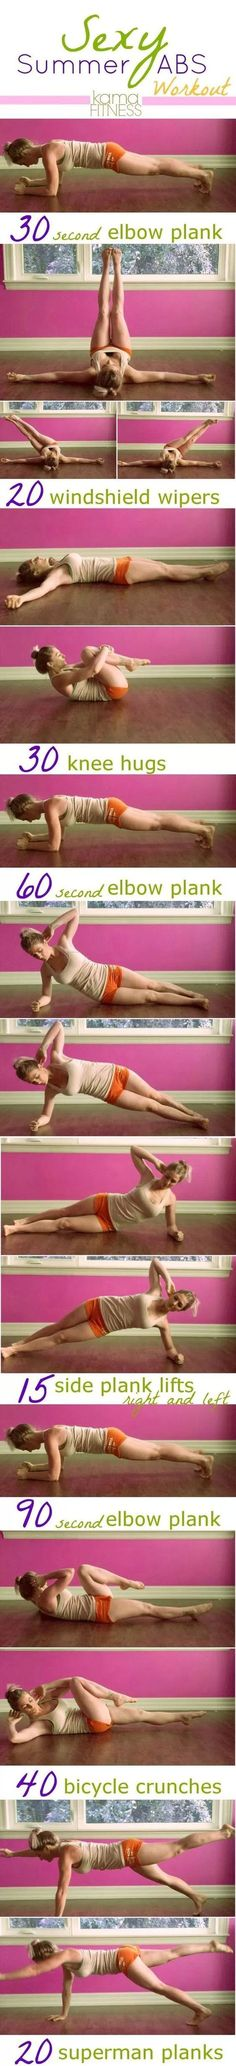 Sexy Summer Abs Workout Planks, side plank lifts